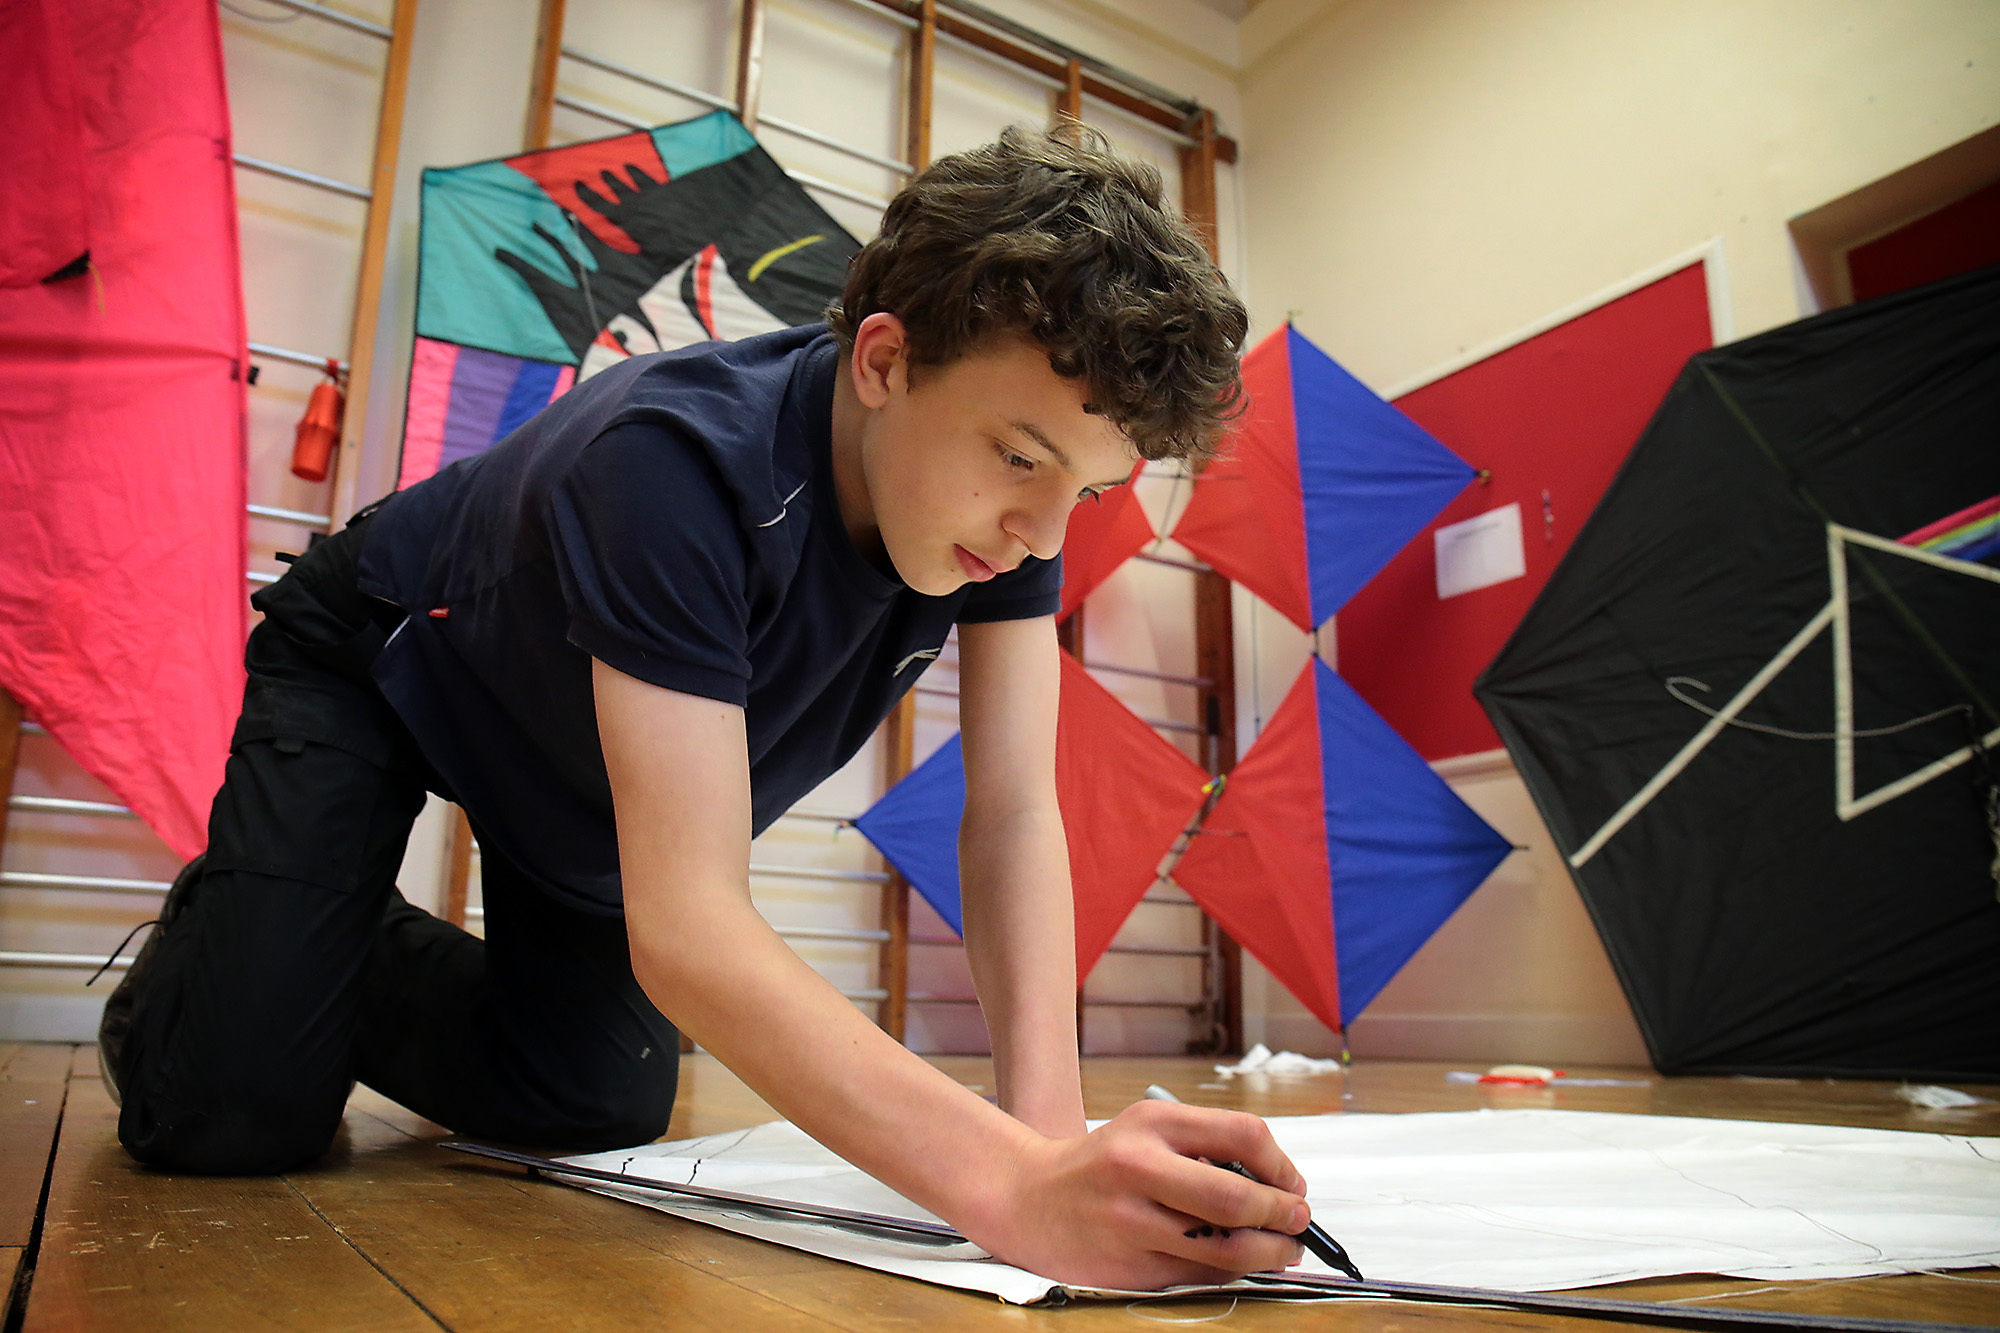 File photo of Aidan Luck, 14, at an OYAP kite-making masterclass in Bicester. Picture: Ric Mellis